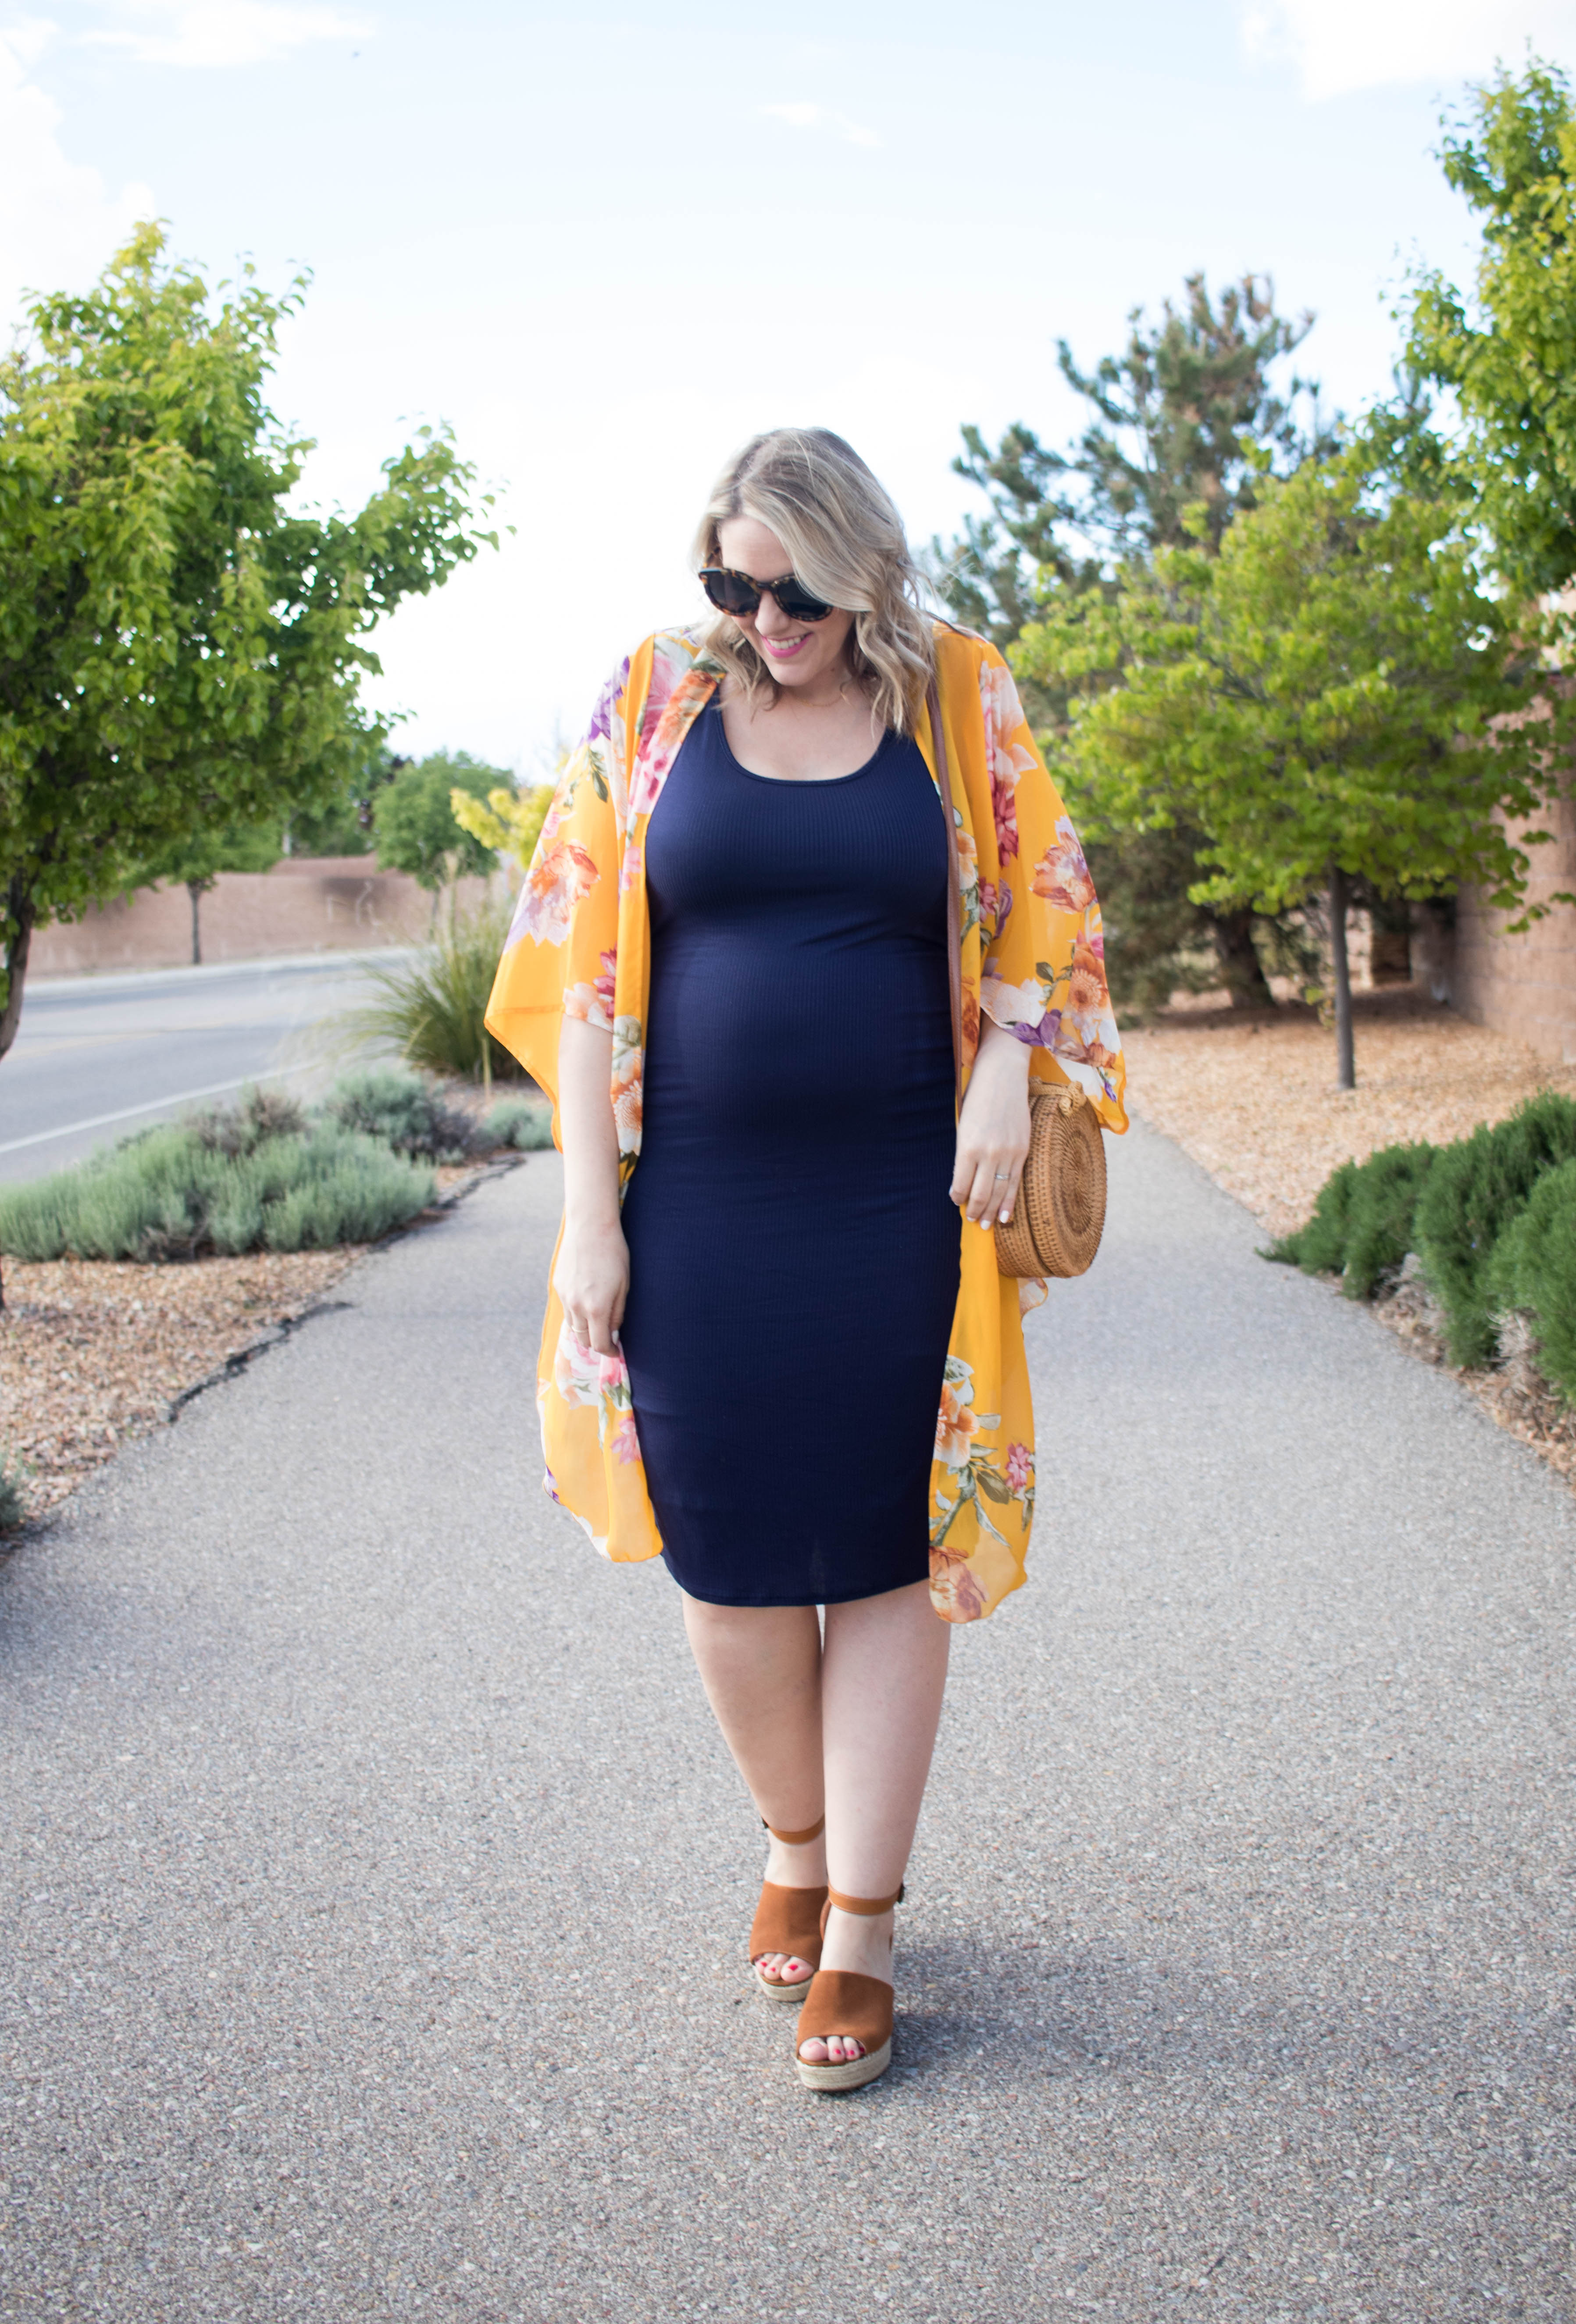 the best maternity dress pink blush #maternitydress #maternityoutfit #pregnancystyle